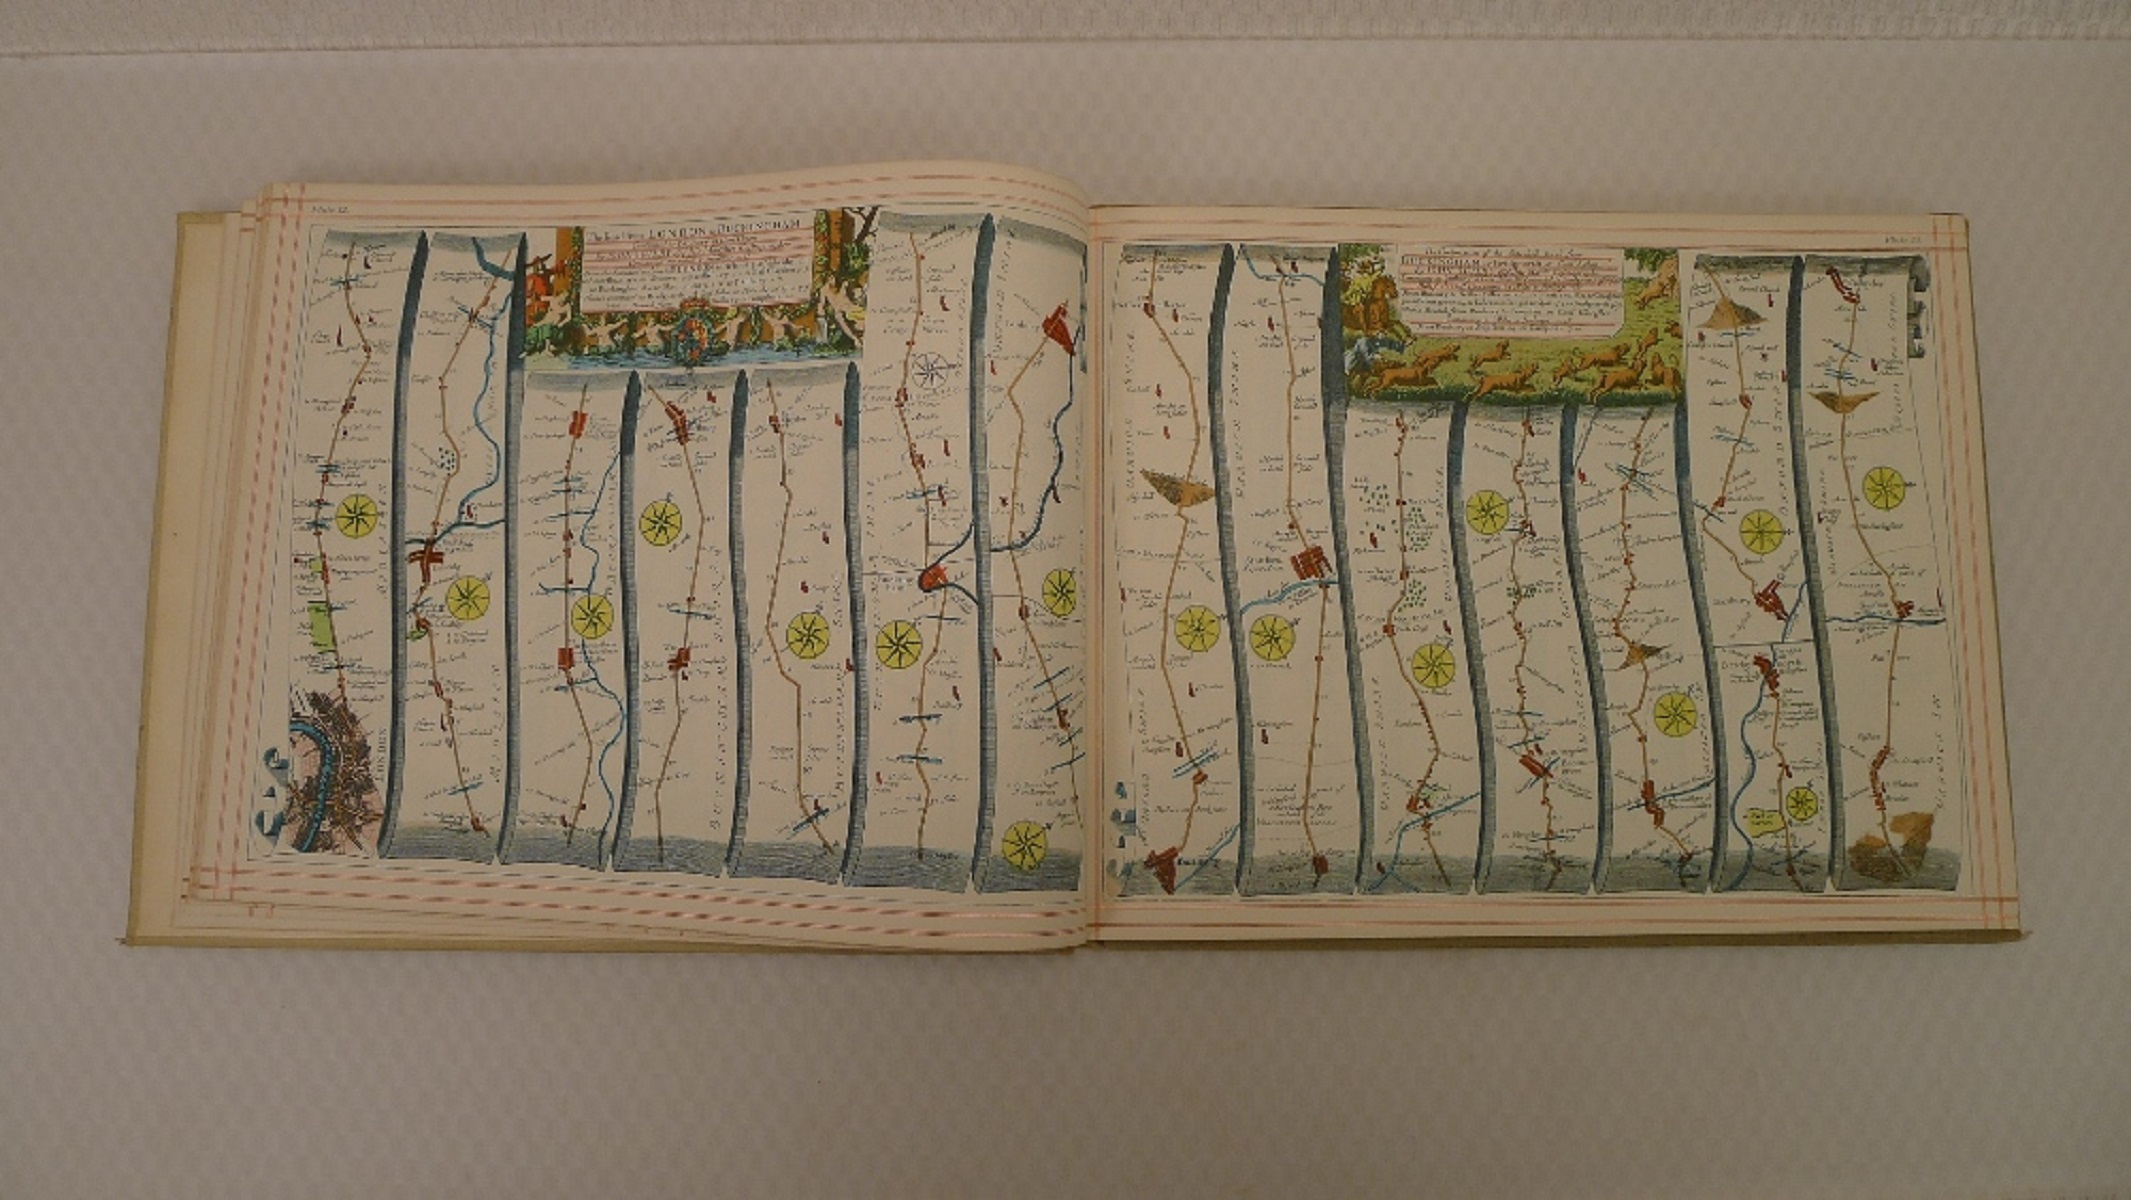 A facsimile reprint of Britannia: Volume The First or an Illustration of the Kingdom of England - Image 6 of 7